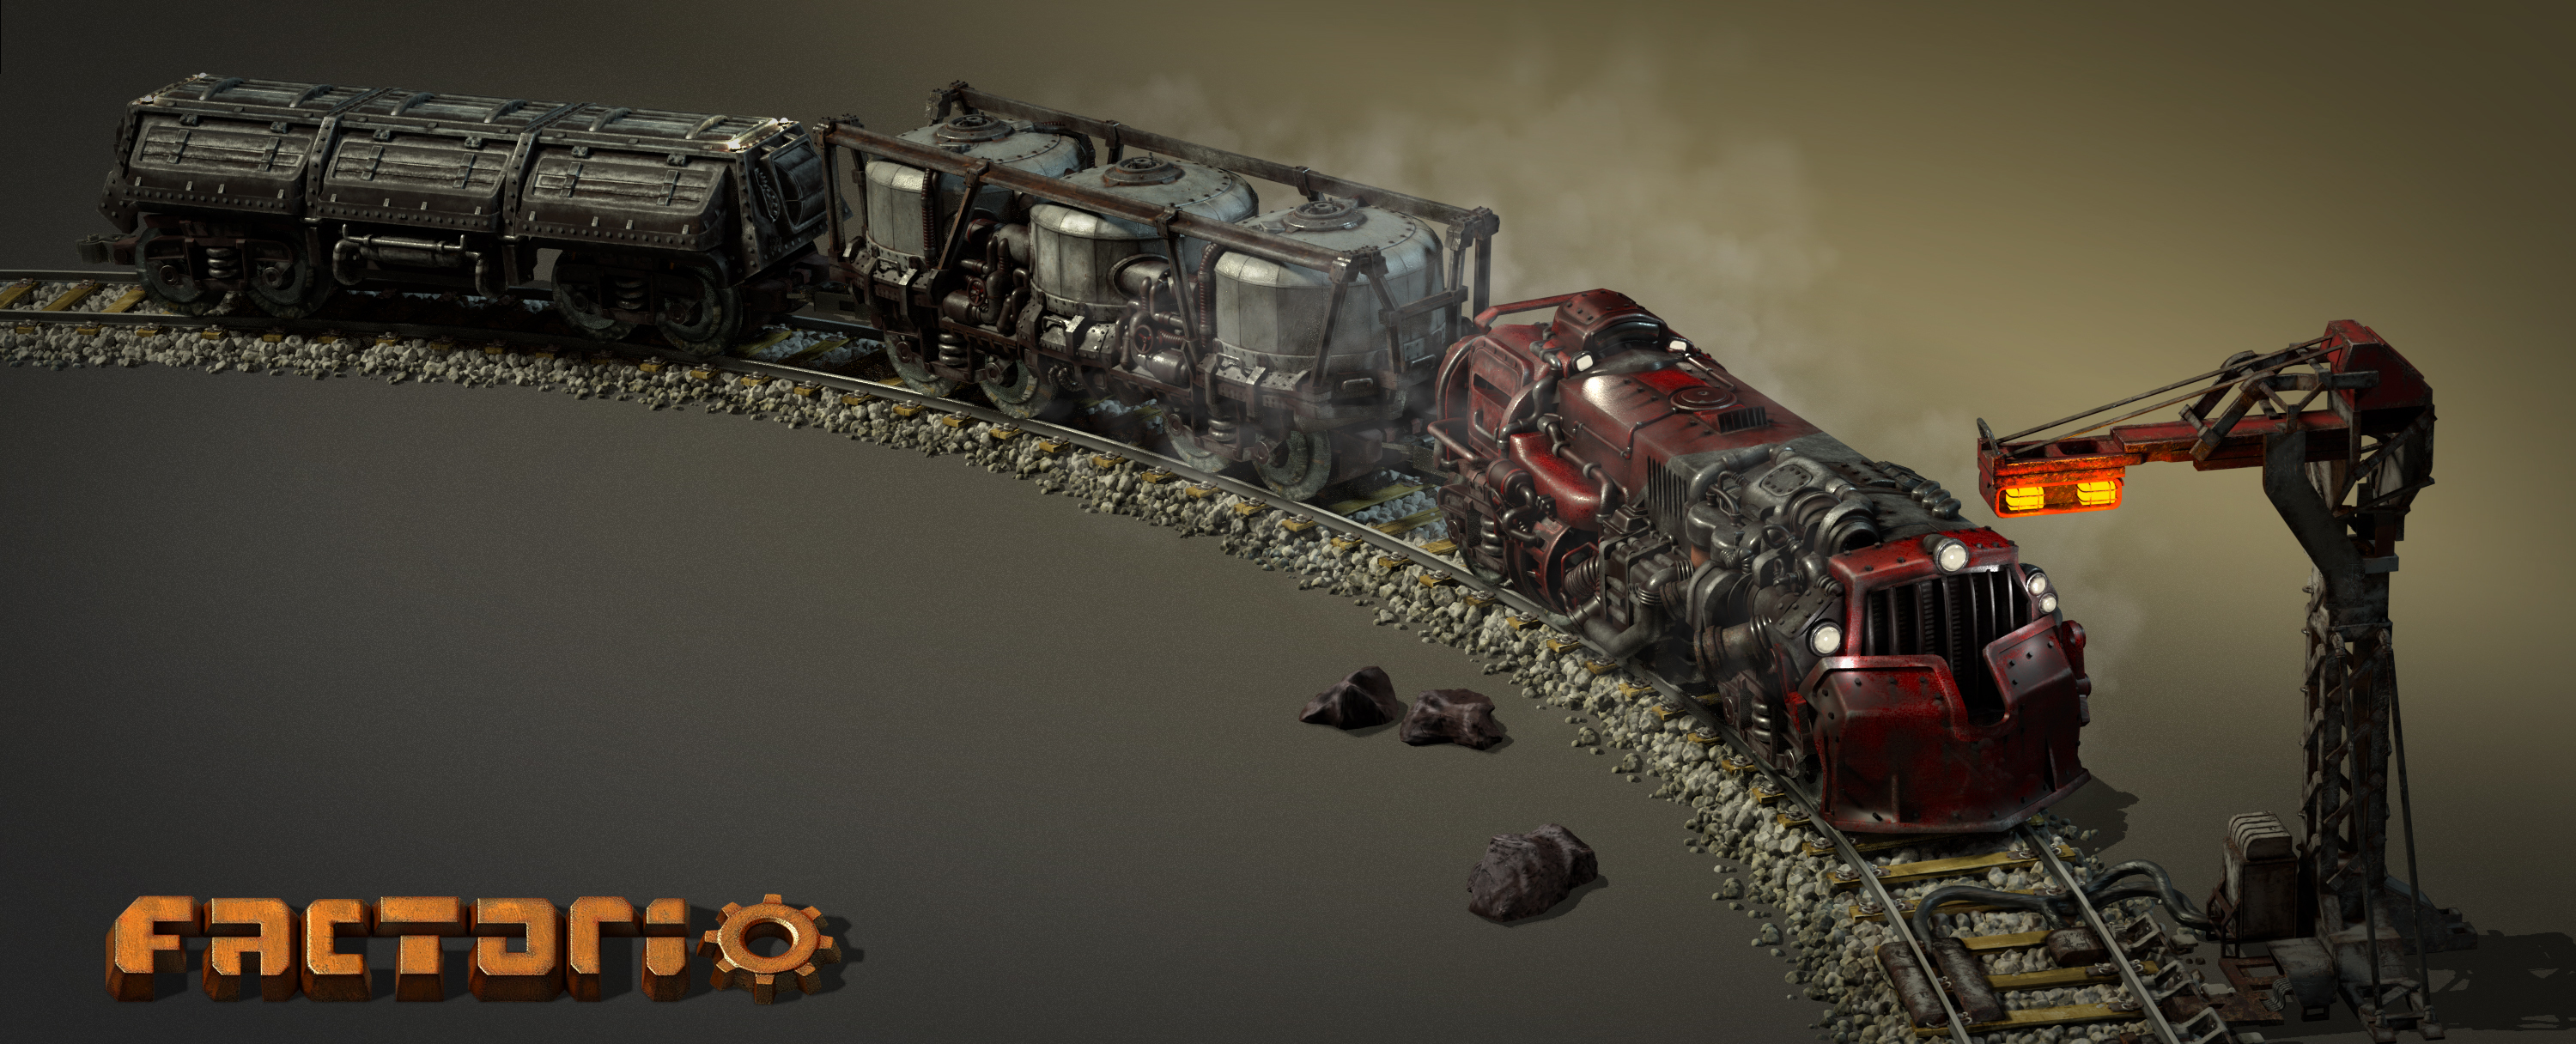 News All Simple Steam Engine Besides Diagram On A Test Render To See How The New Train Models Will Hold Up In Higher Resolution Settings And Has Put Together This Uhd Of Scene